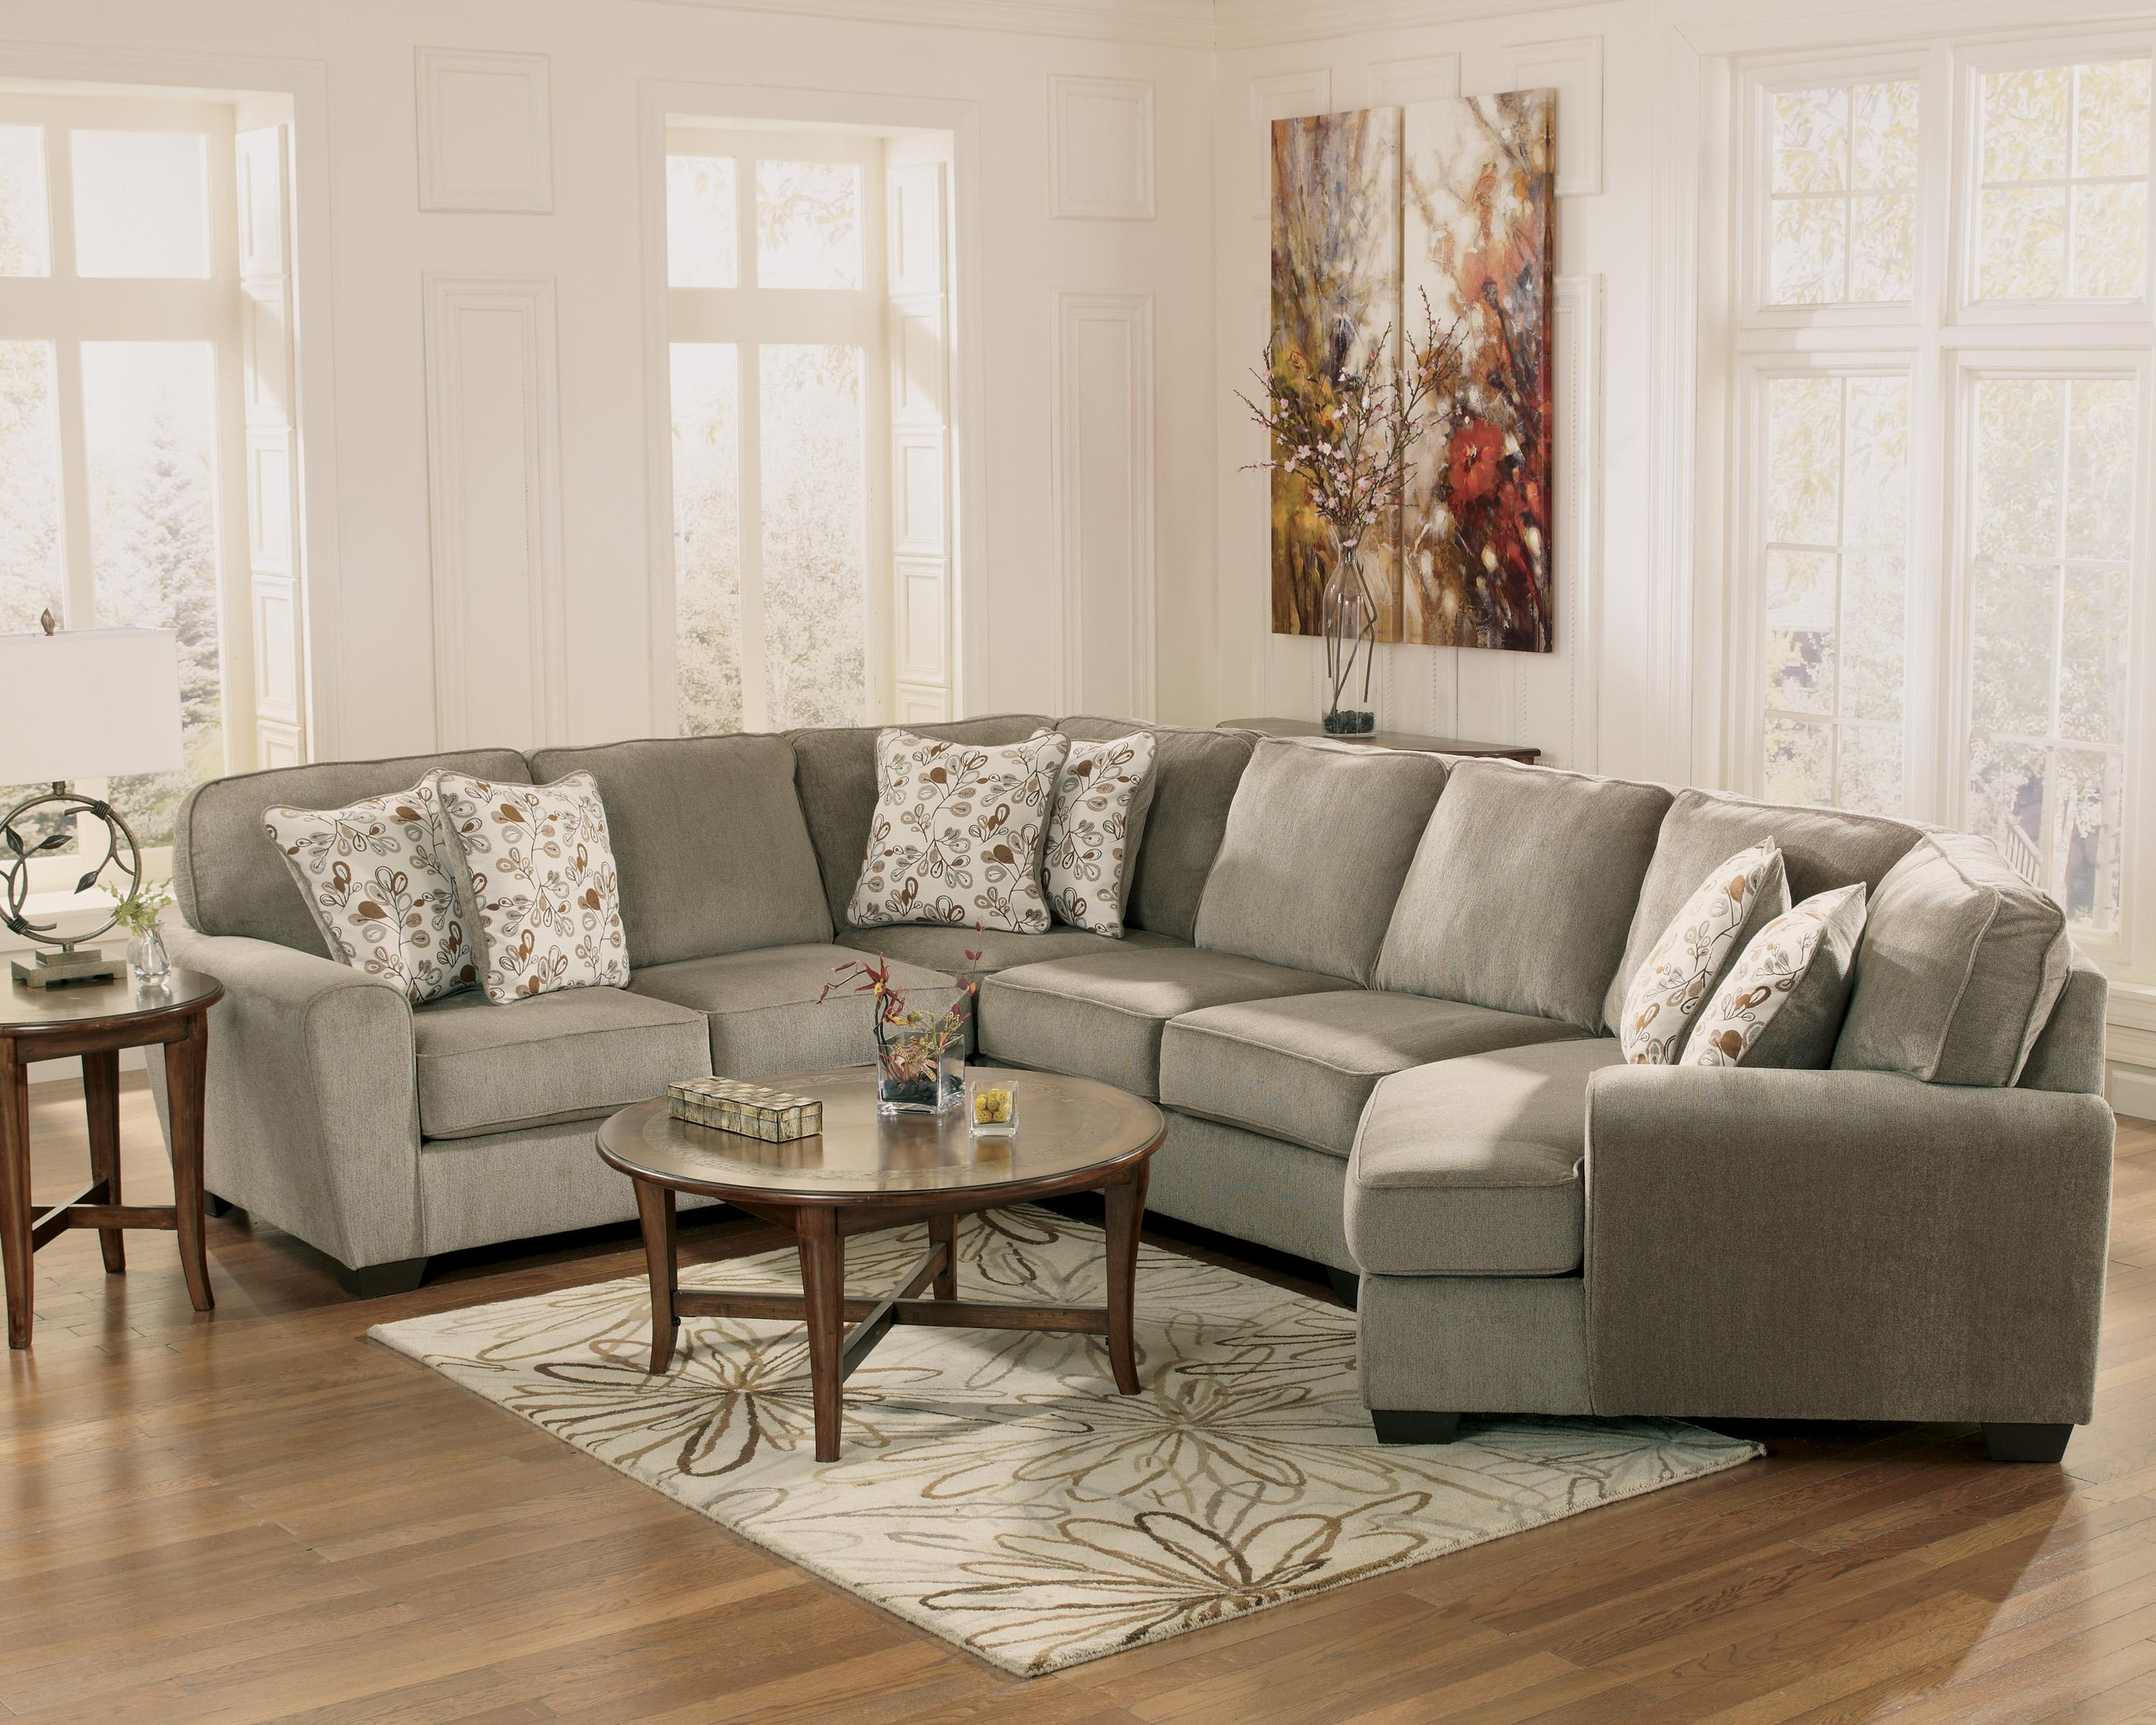 Ashley Furniture Patola Park Patina 4 Piece Small